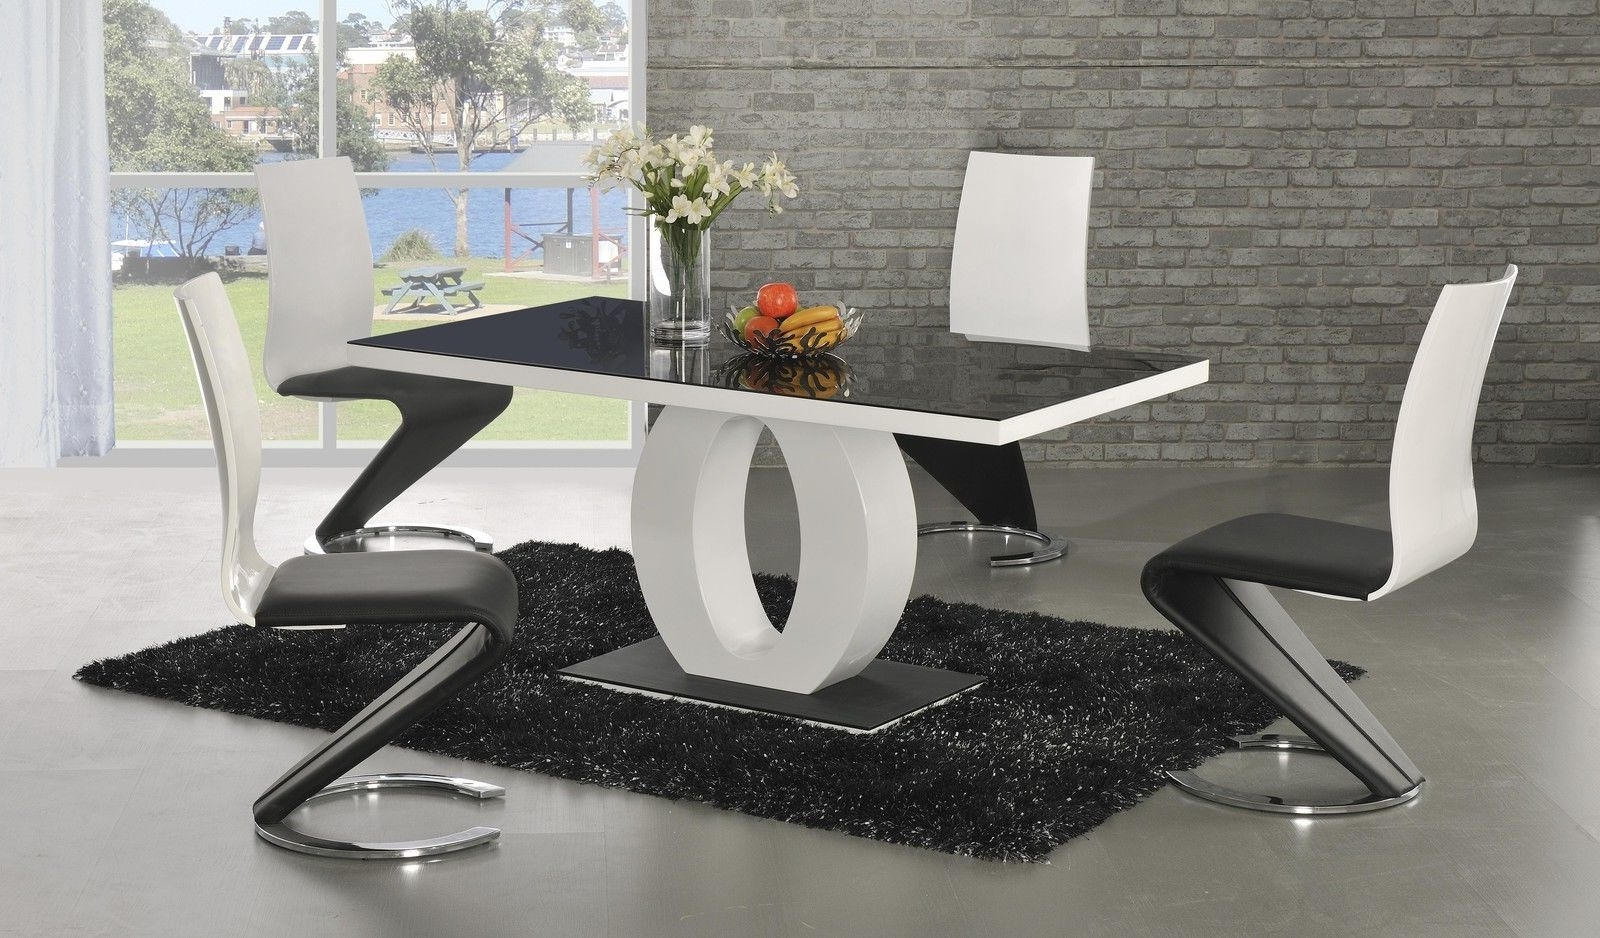 Fashionable Ga Angel Black Glass White Gloss 160 Cm Designer Dining Set 4 6 Z For White High Gloss Dining Tables And Chairs (View 20 of 25)